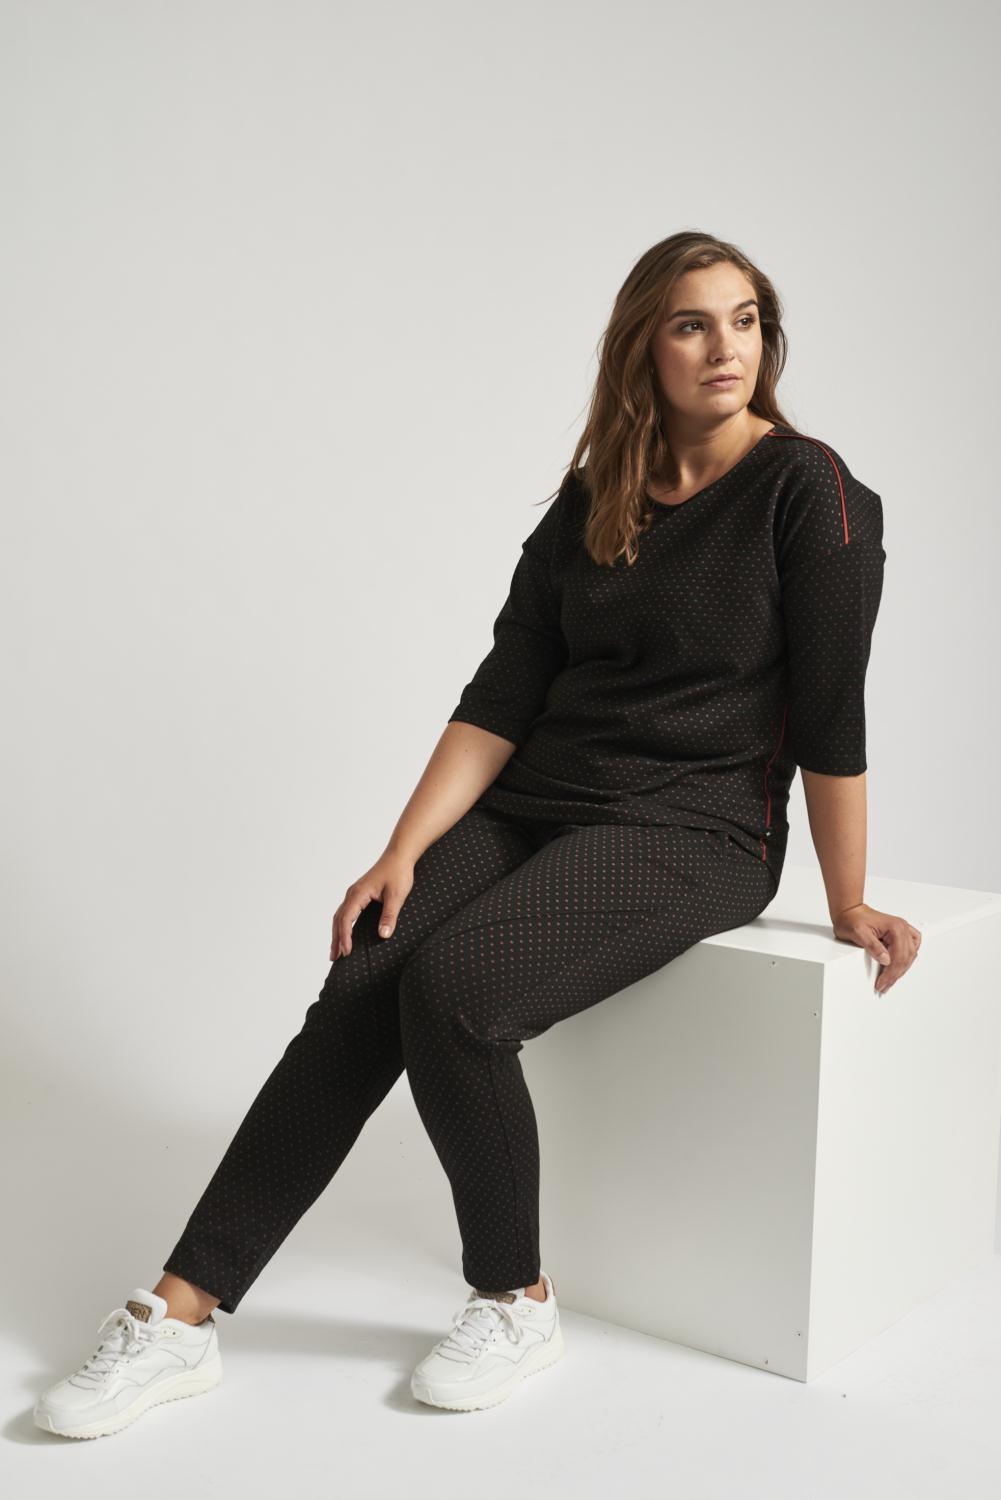 gallery-6637-for-AD4003